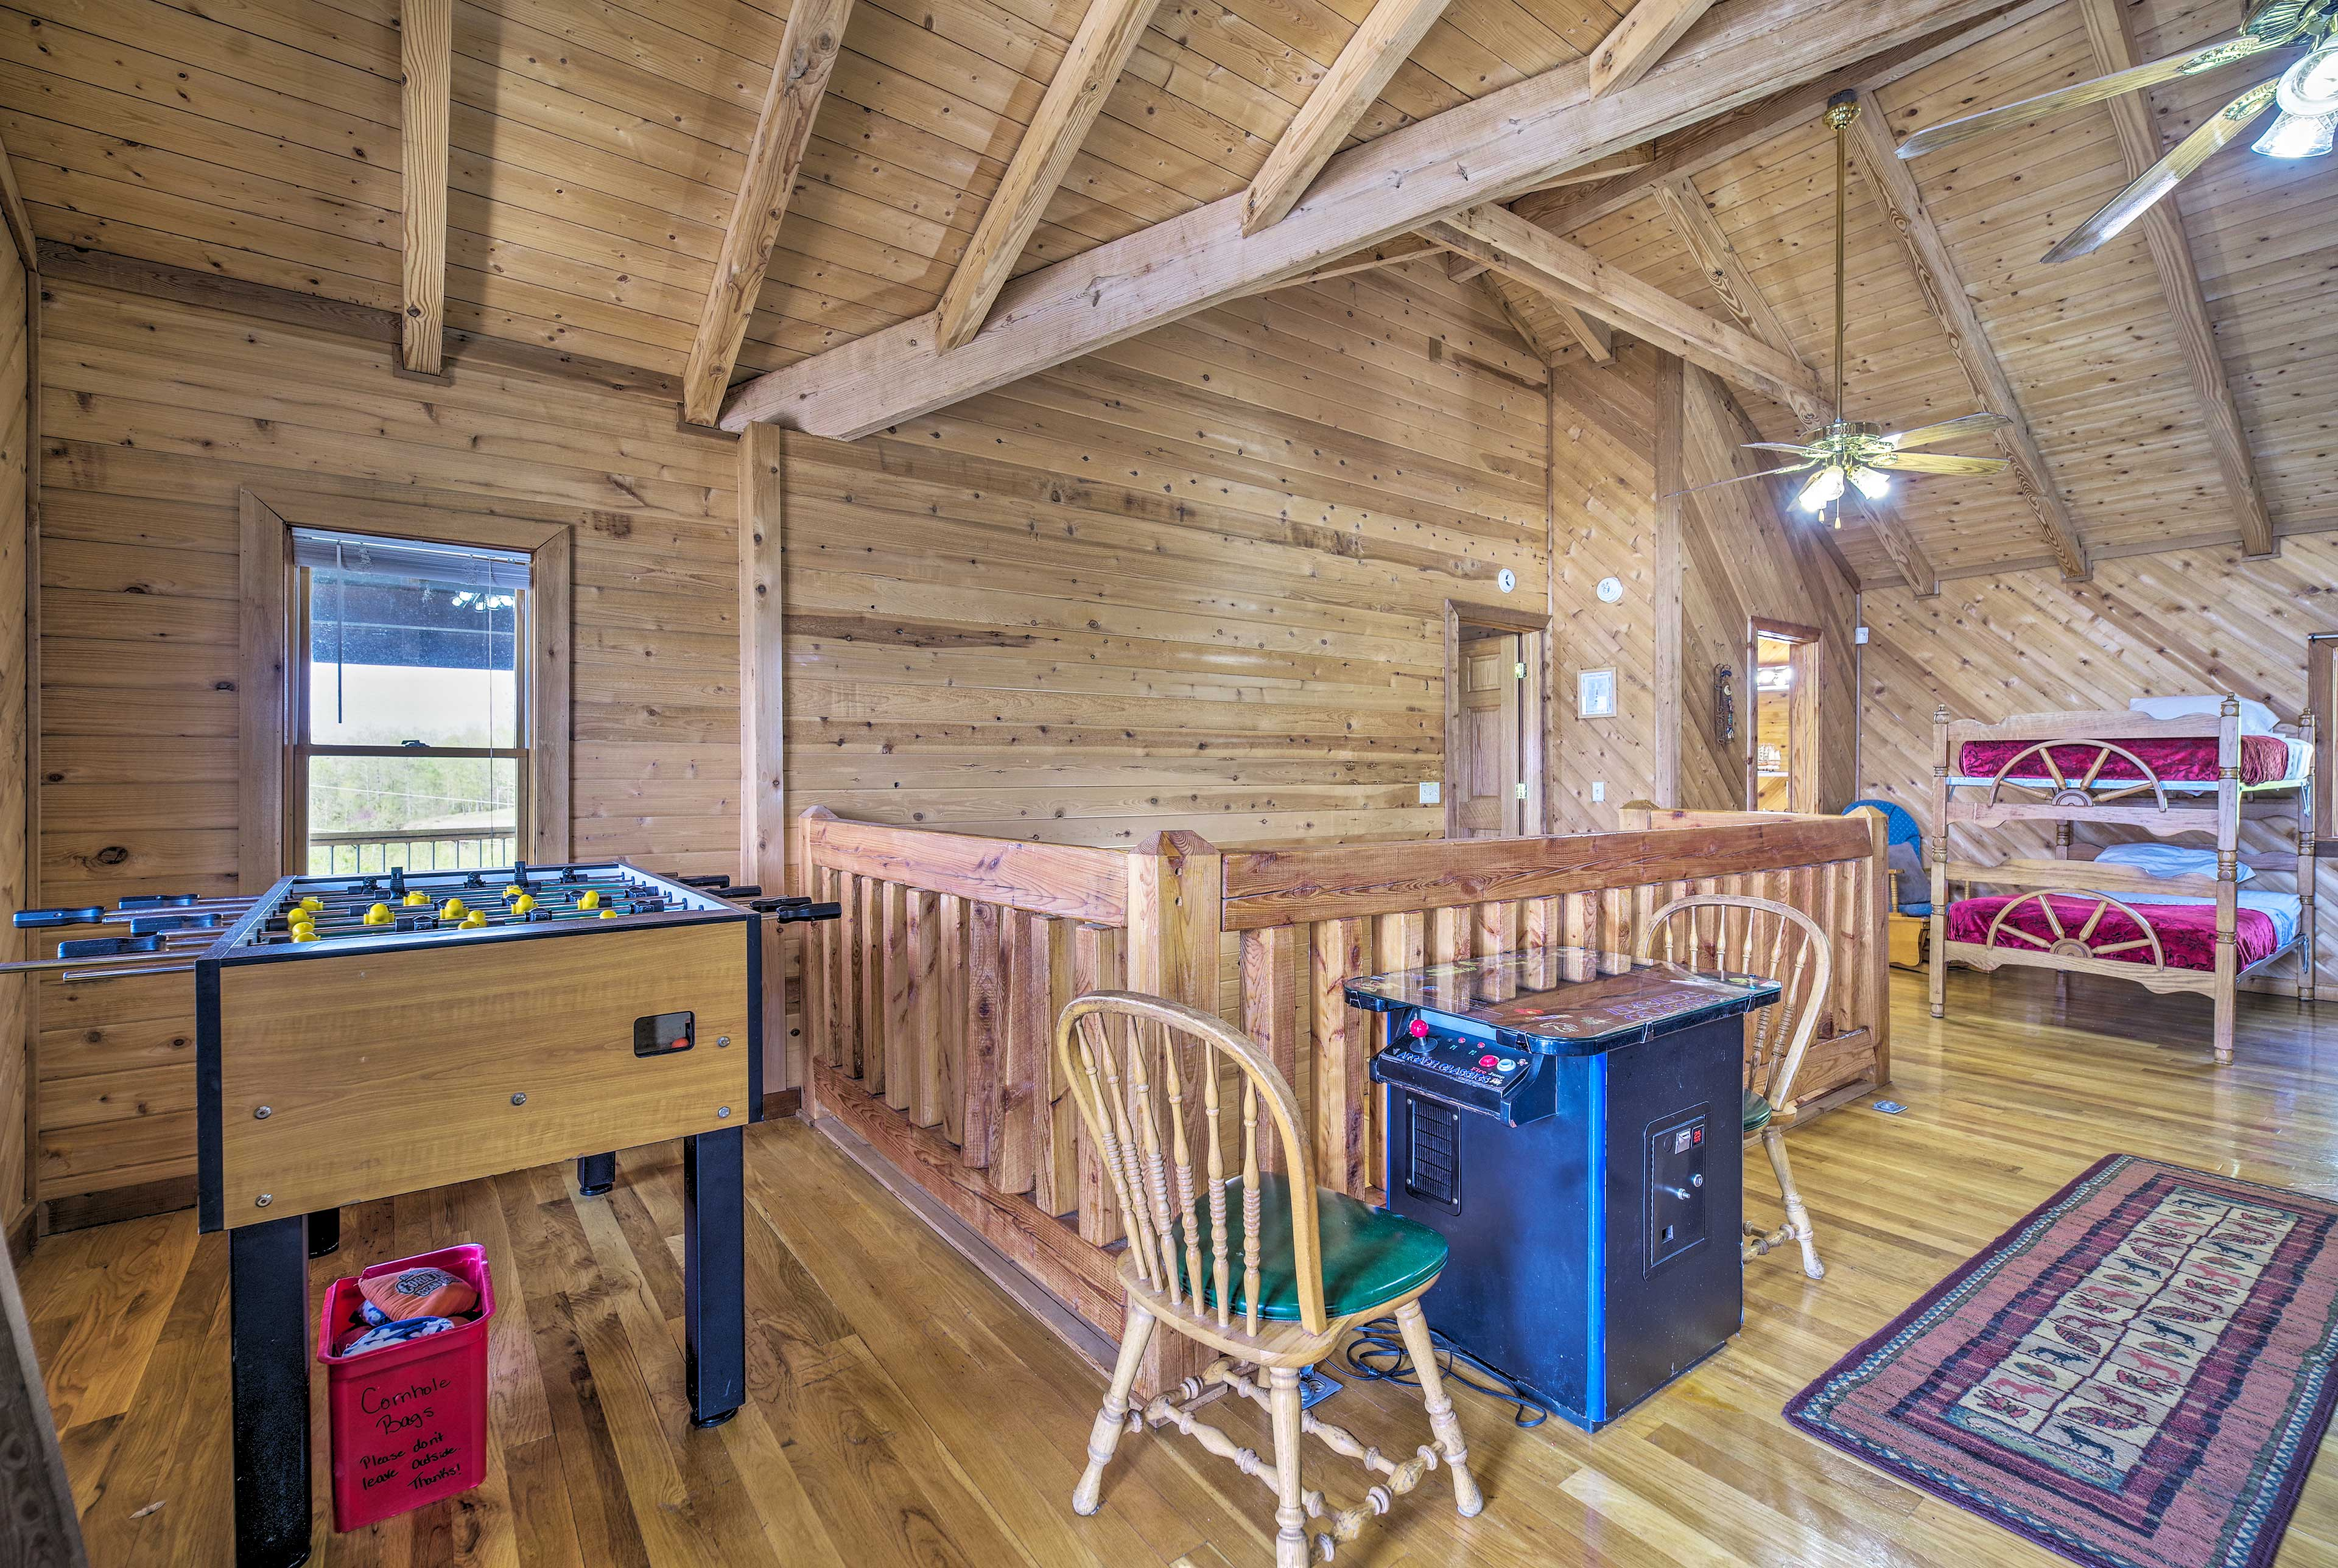 The kids will love playing the games in the loft!